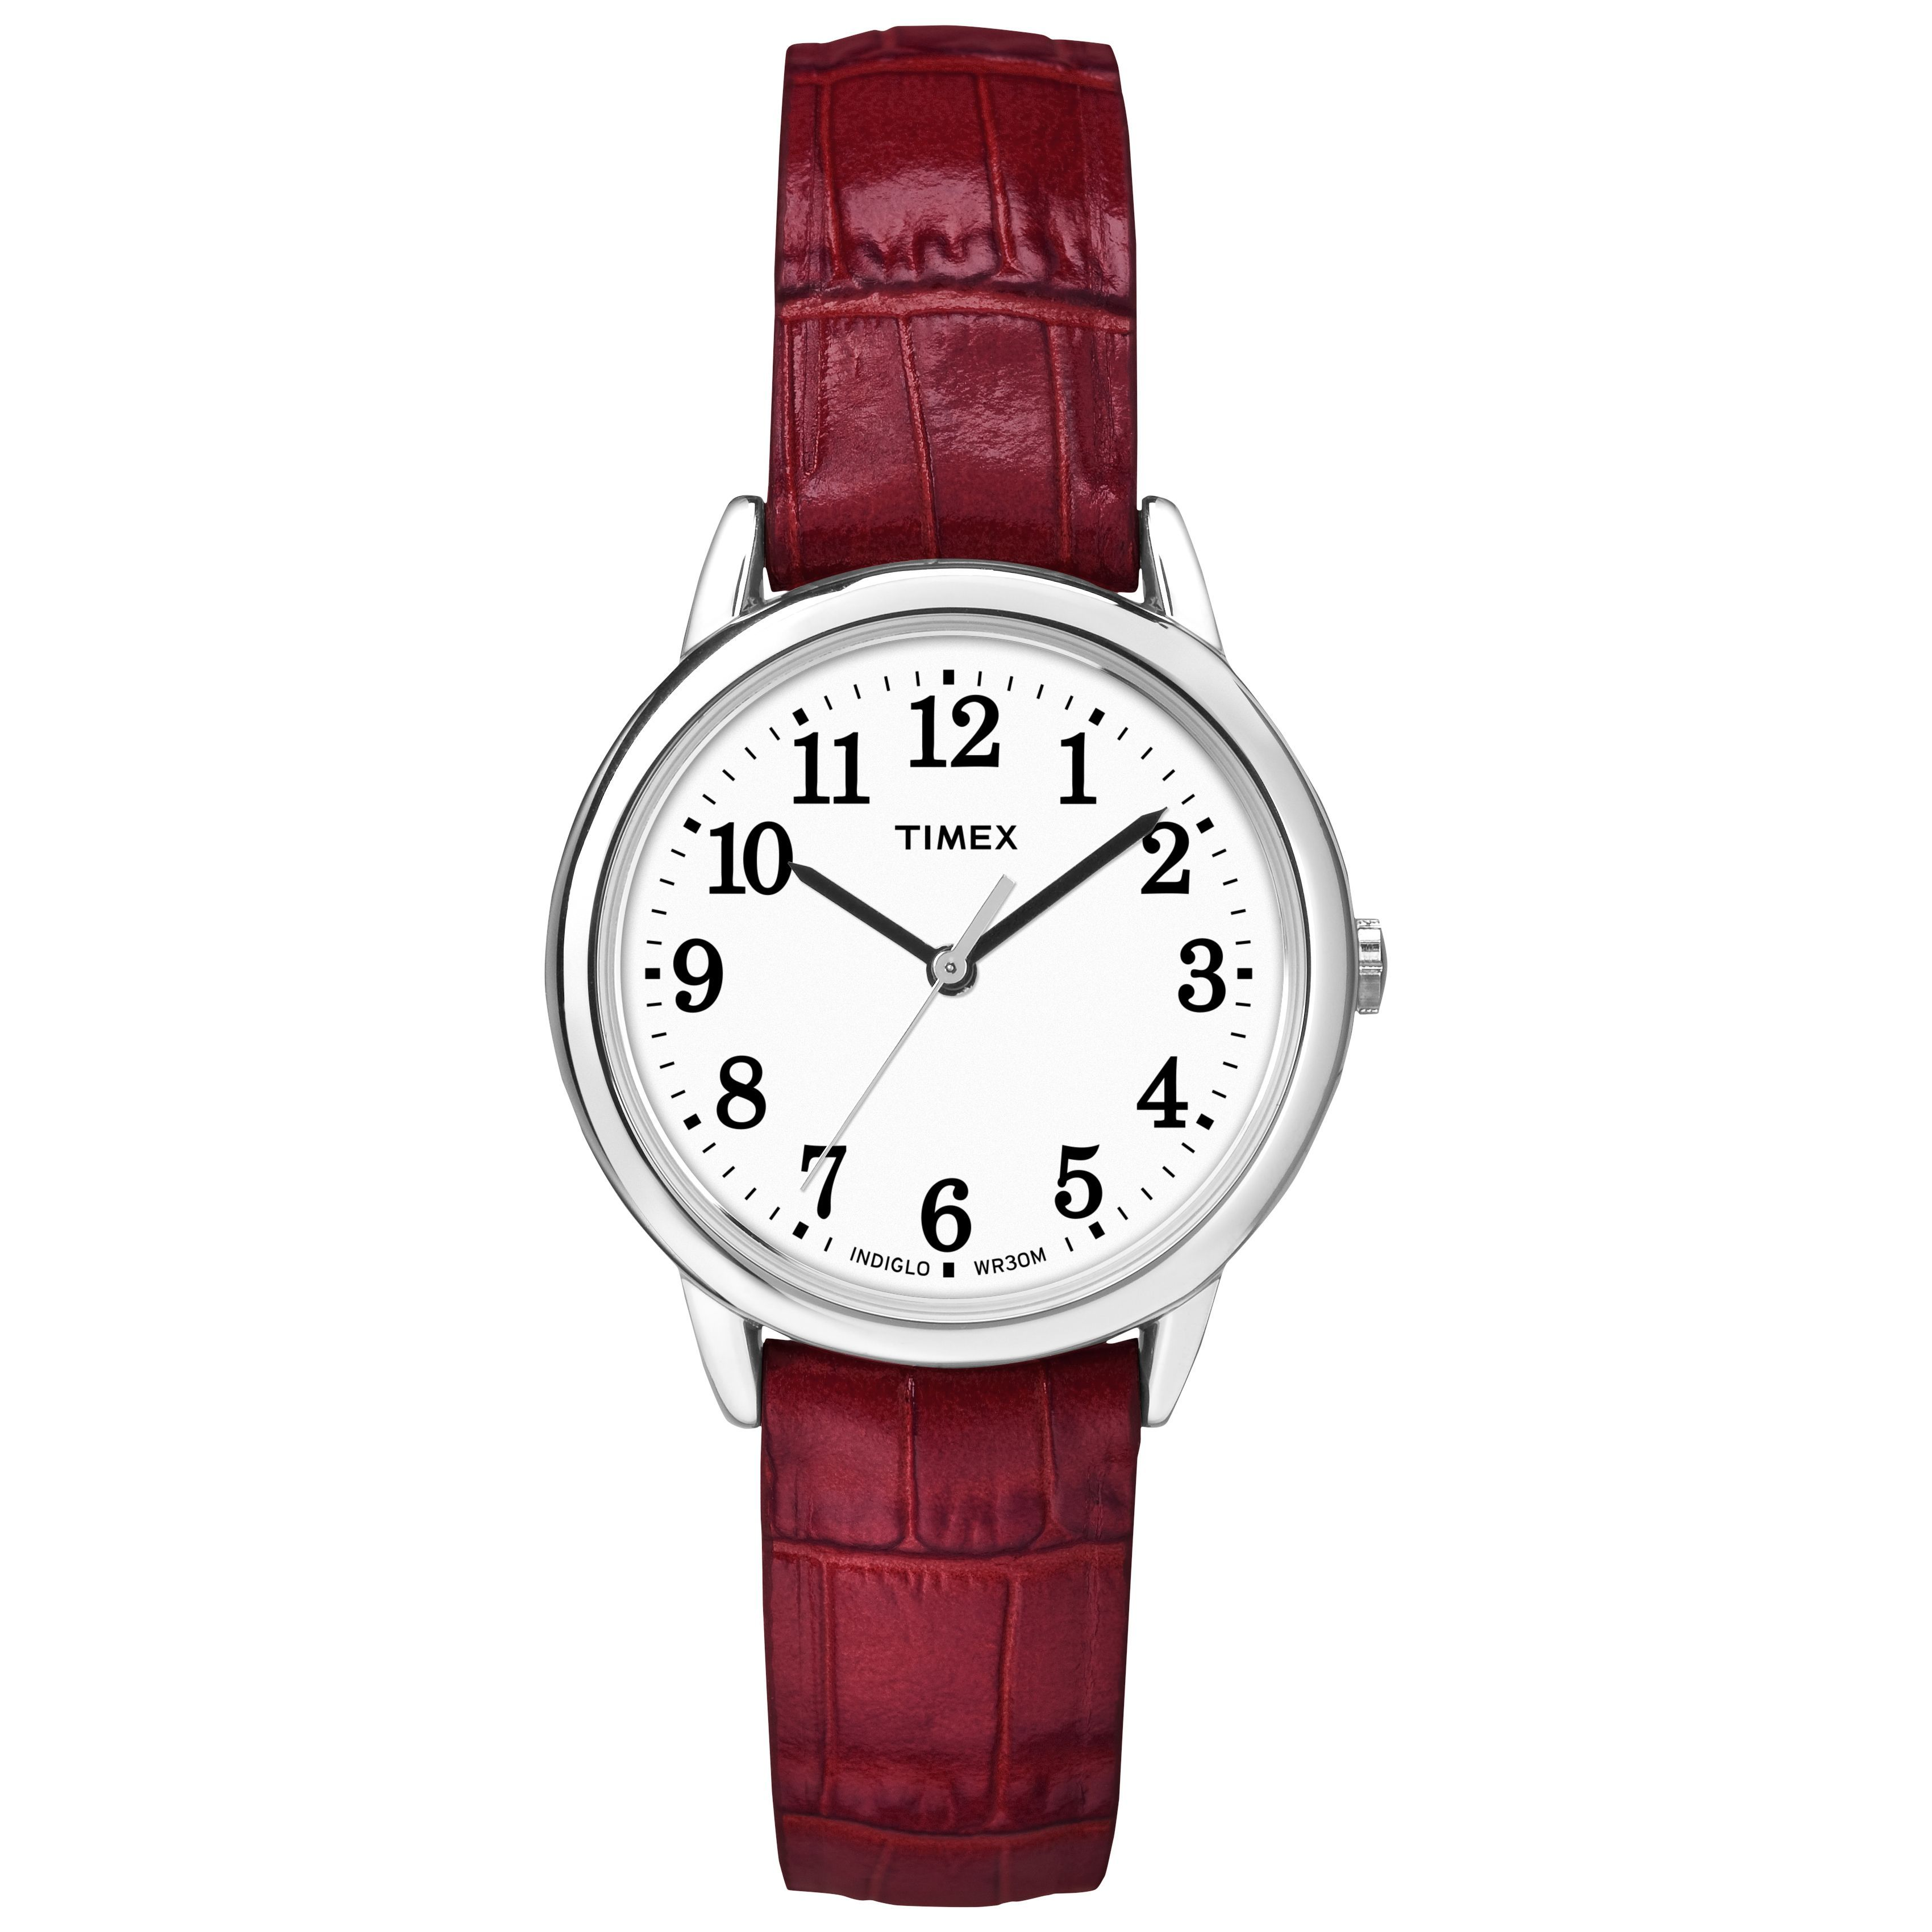 s red watches quartz burgi jewelry overstock watch strap free today product womens leather sparkling with women shipping